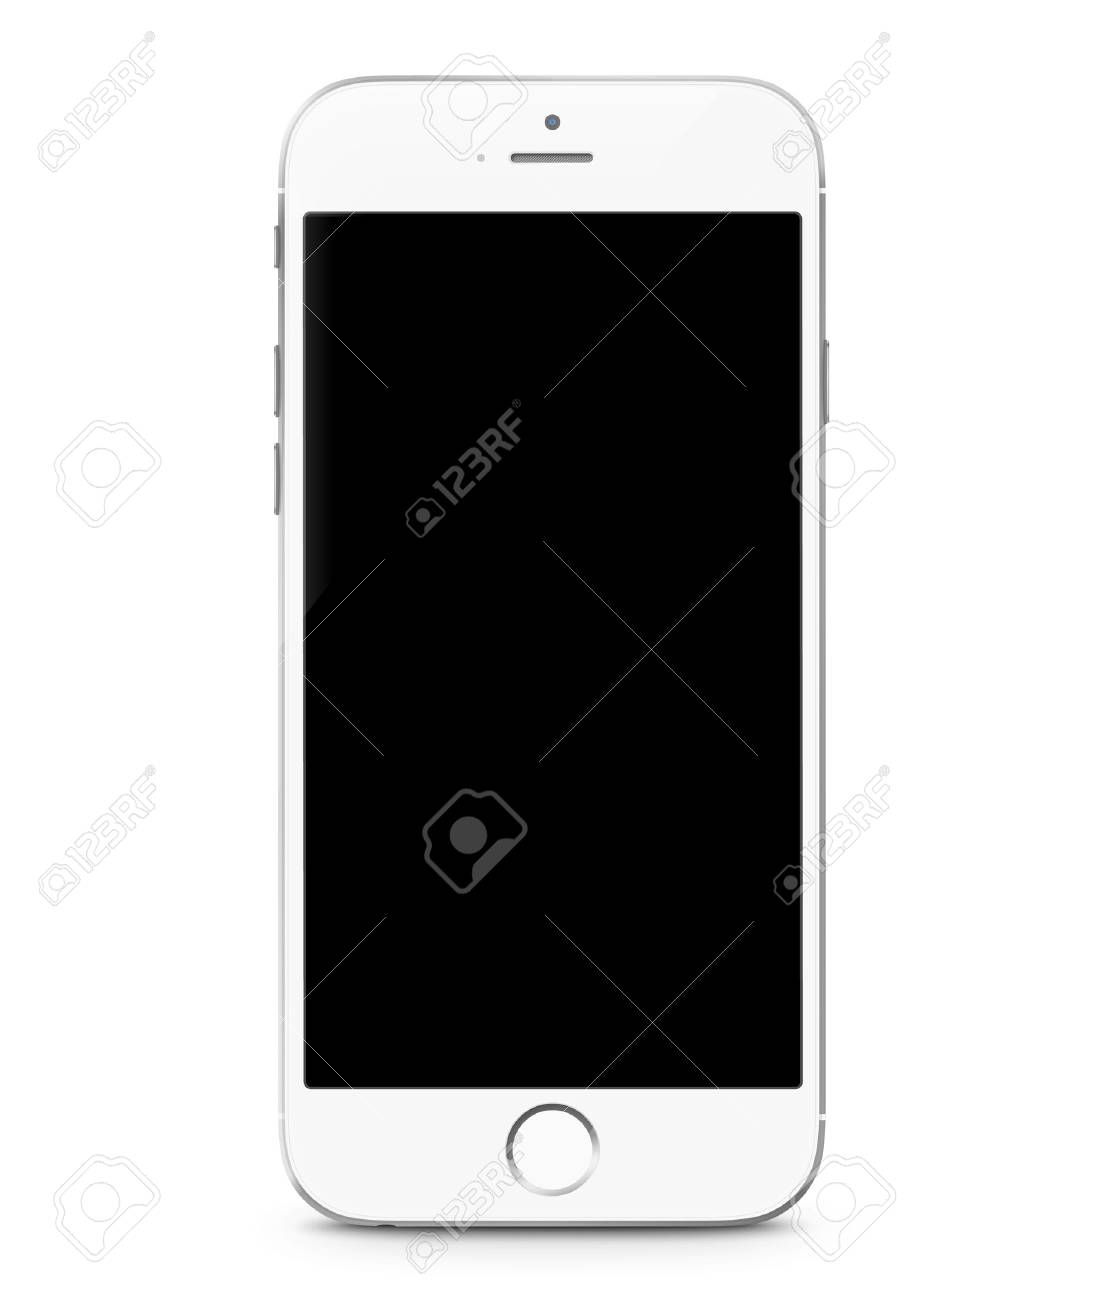 Smartphone realistic vector illustration. Mobile phone mockup with blank screen isolated on white background - 54707867